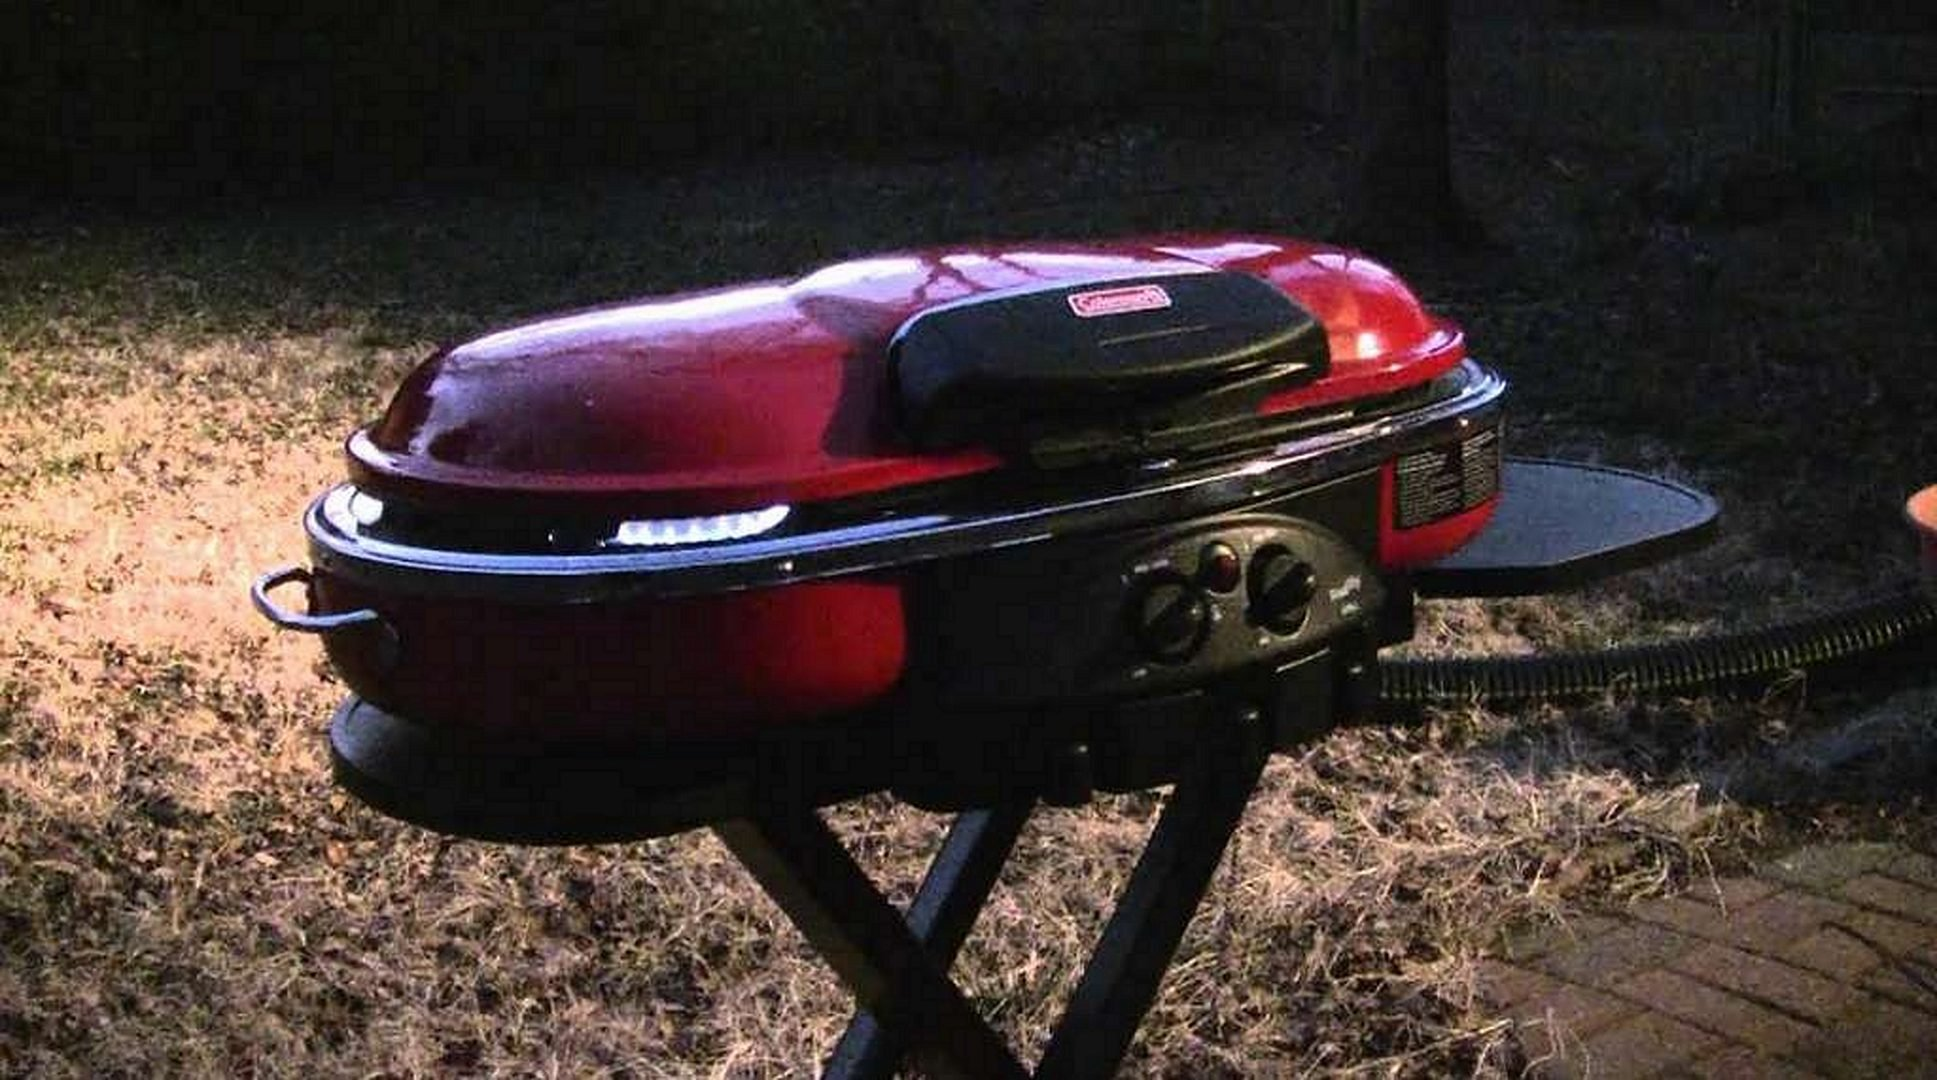 The Best Camping Grills for the Money